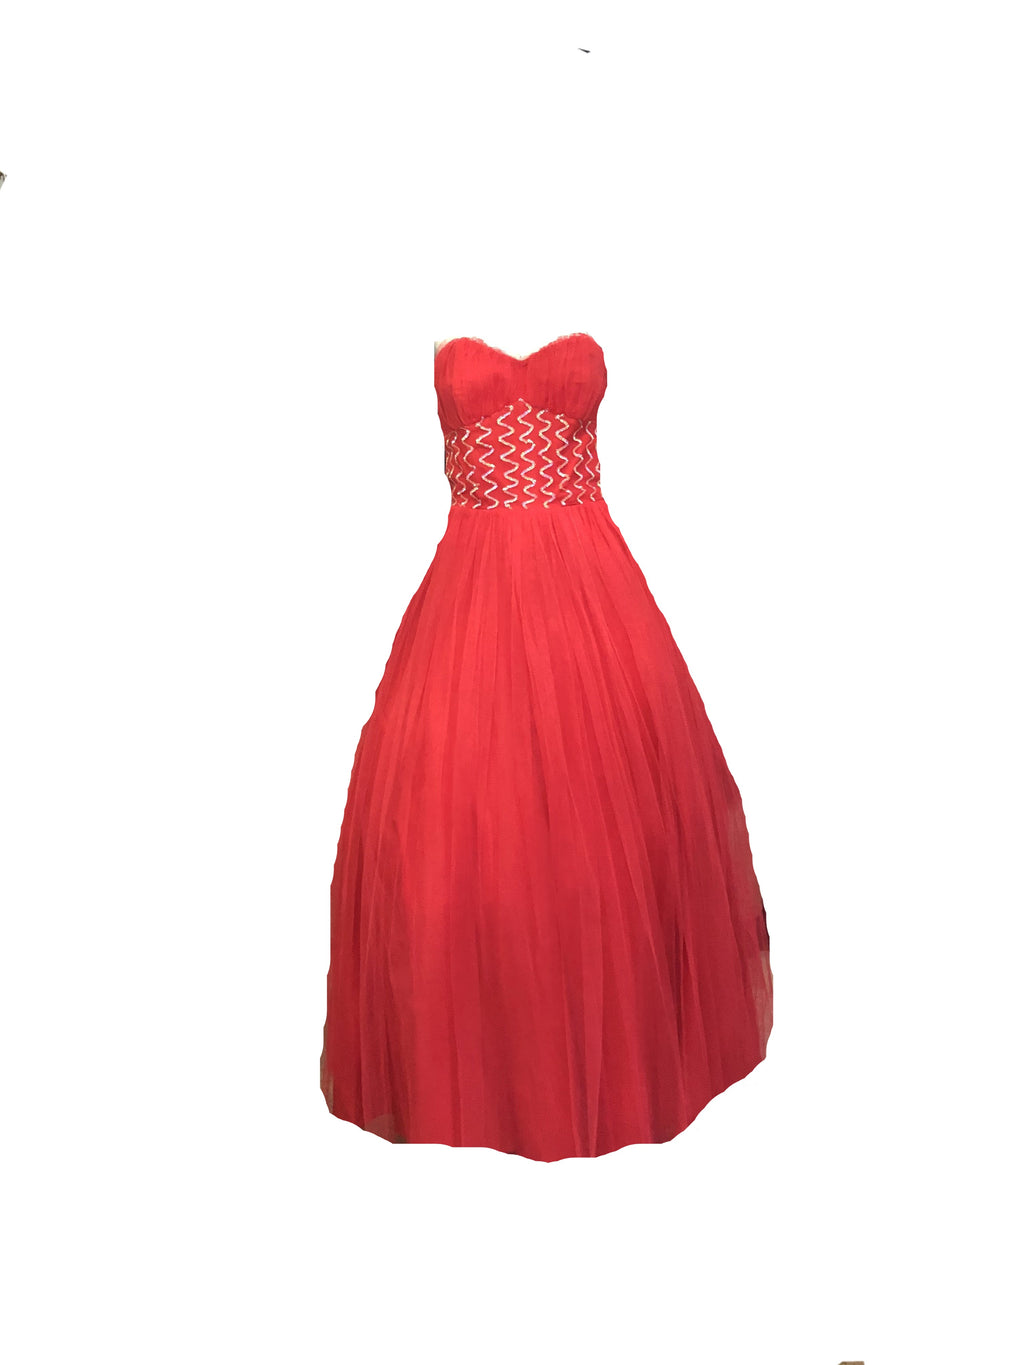 50s Red Tulle Strapless Prom Gown FRONT 1 of 4